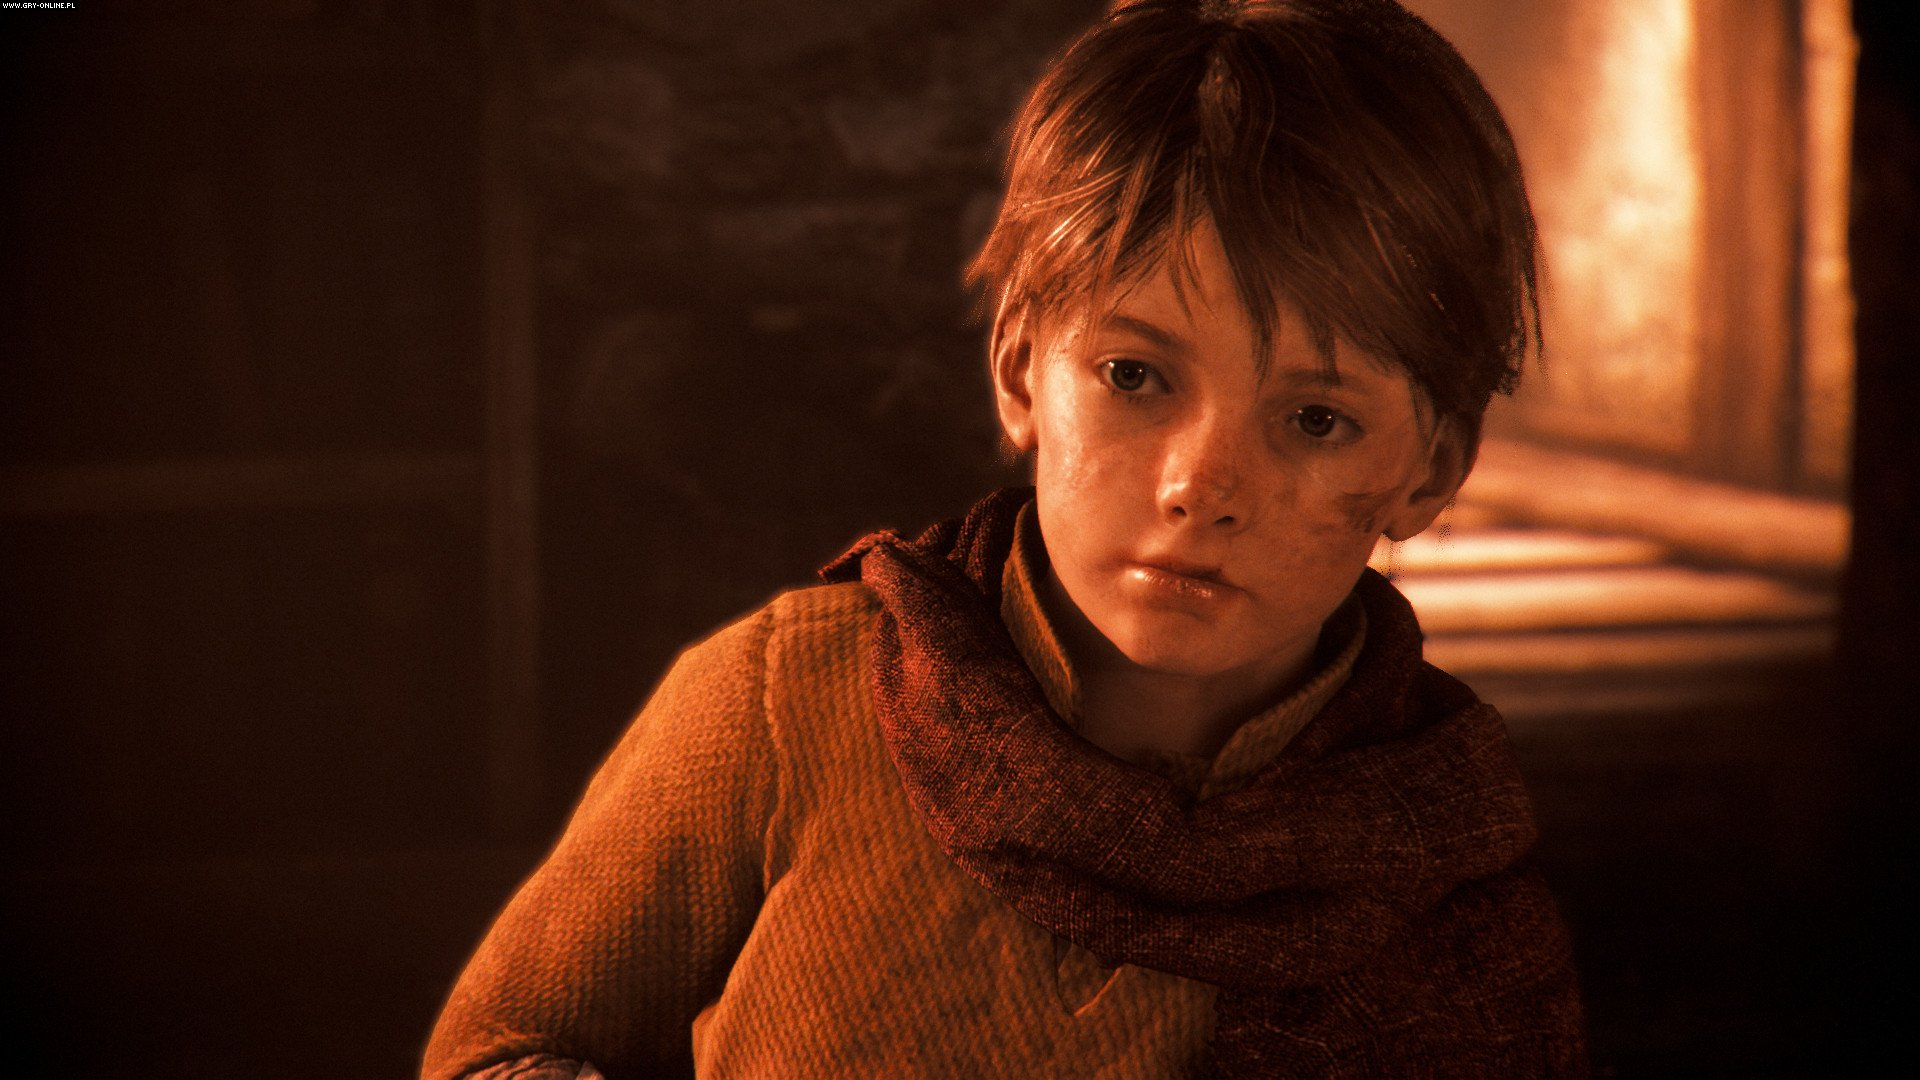 A Plague Tale: Innocence PC, PS4, XONE Games Image 2/30, Asobo Studio, Focus Home Interactive